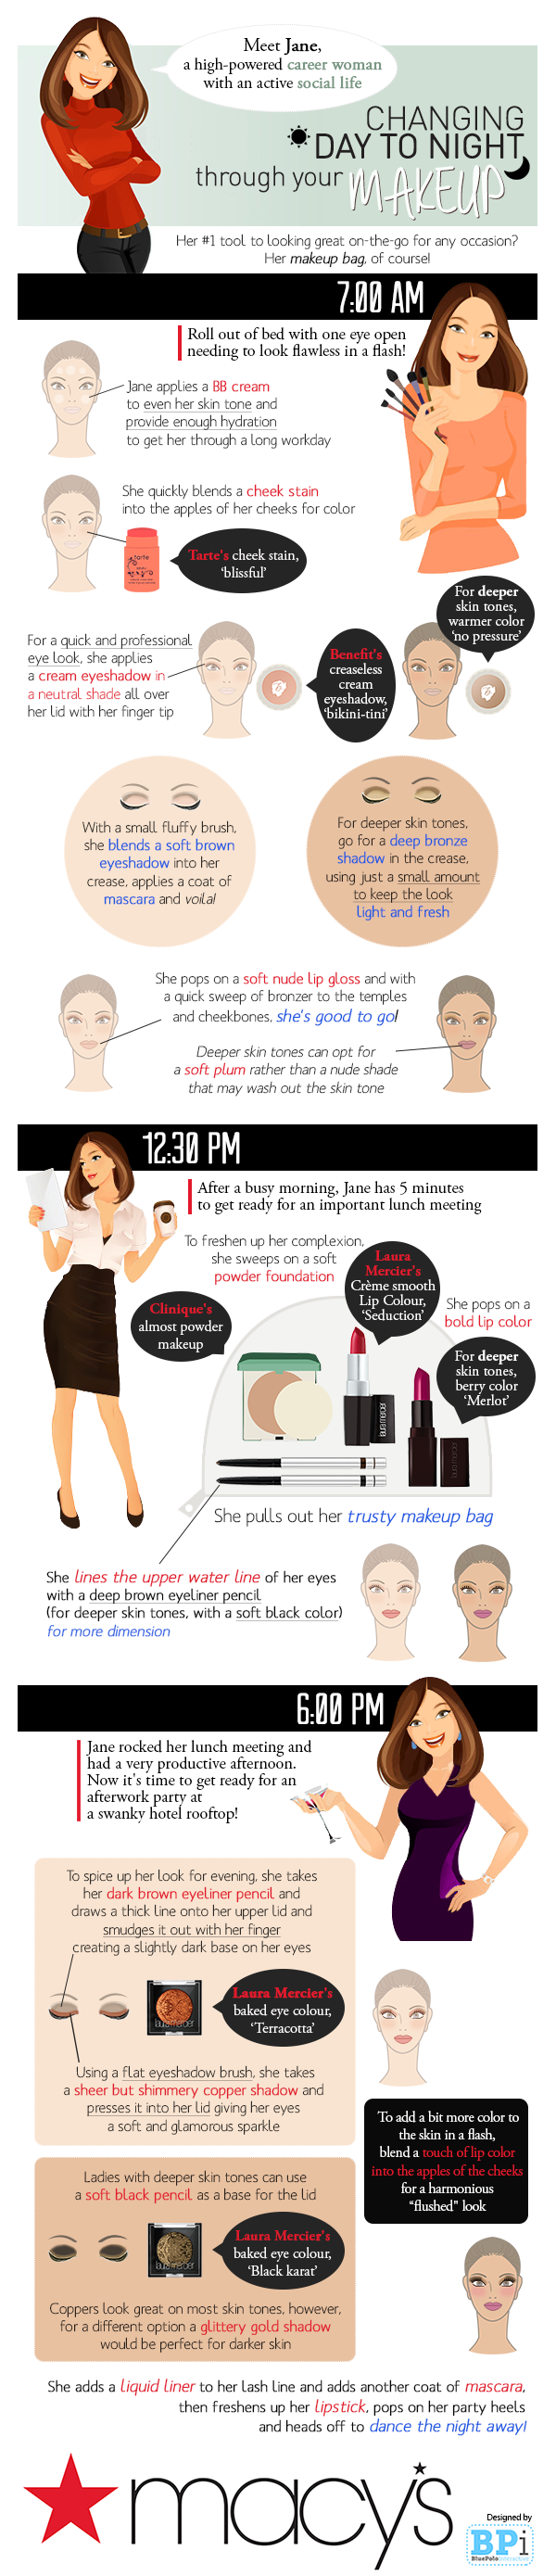 changing-from-day-to-night-through-your-makeup_52ded8ae02a1b